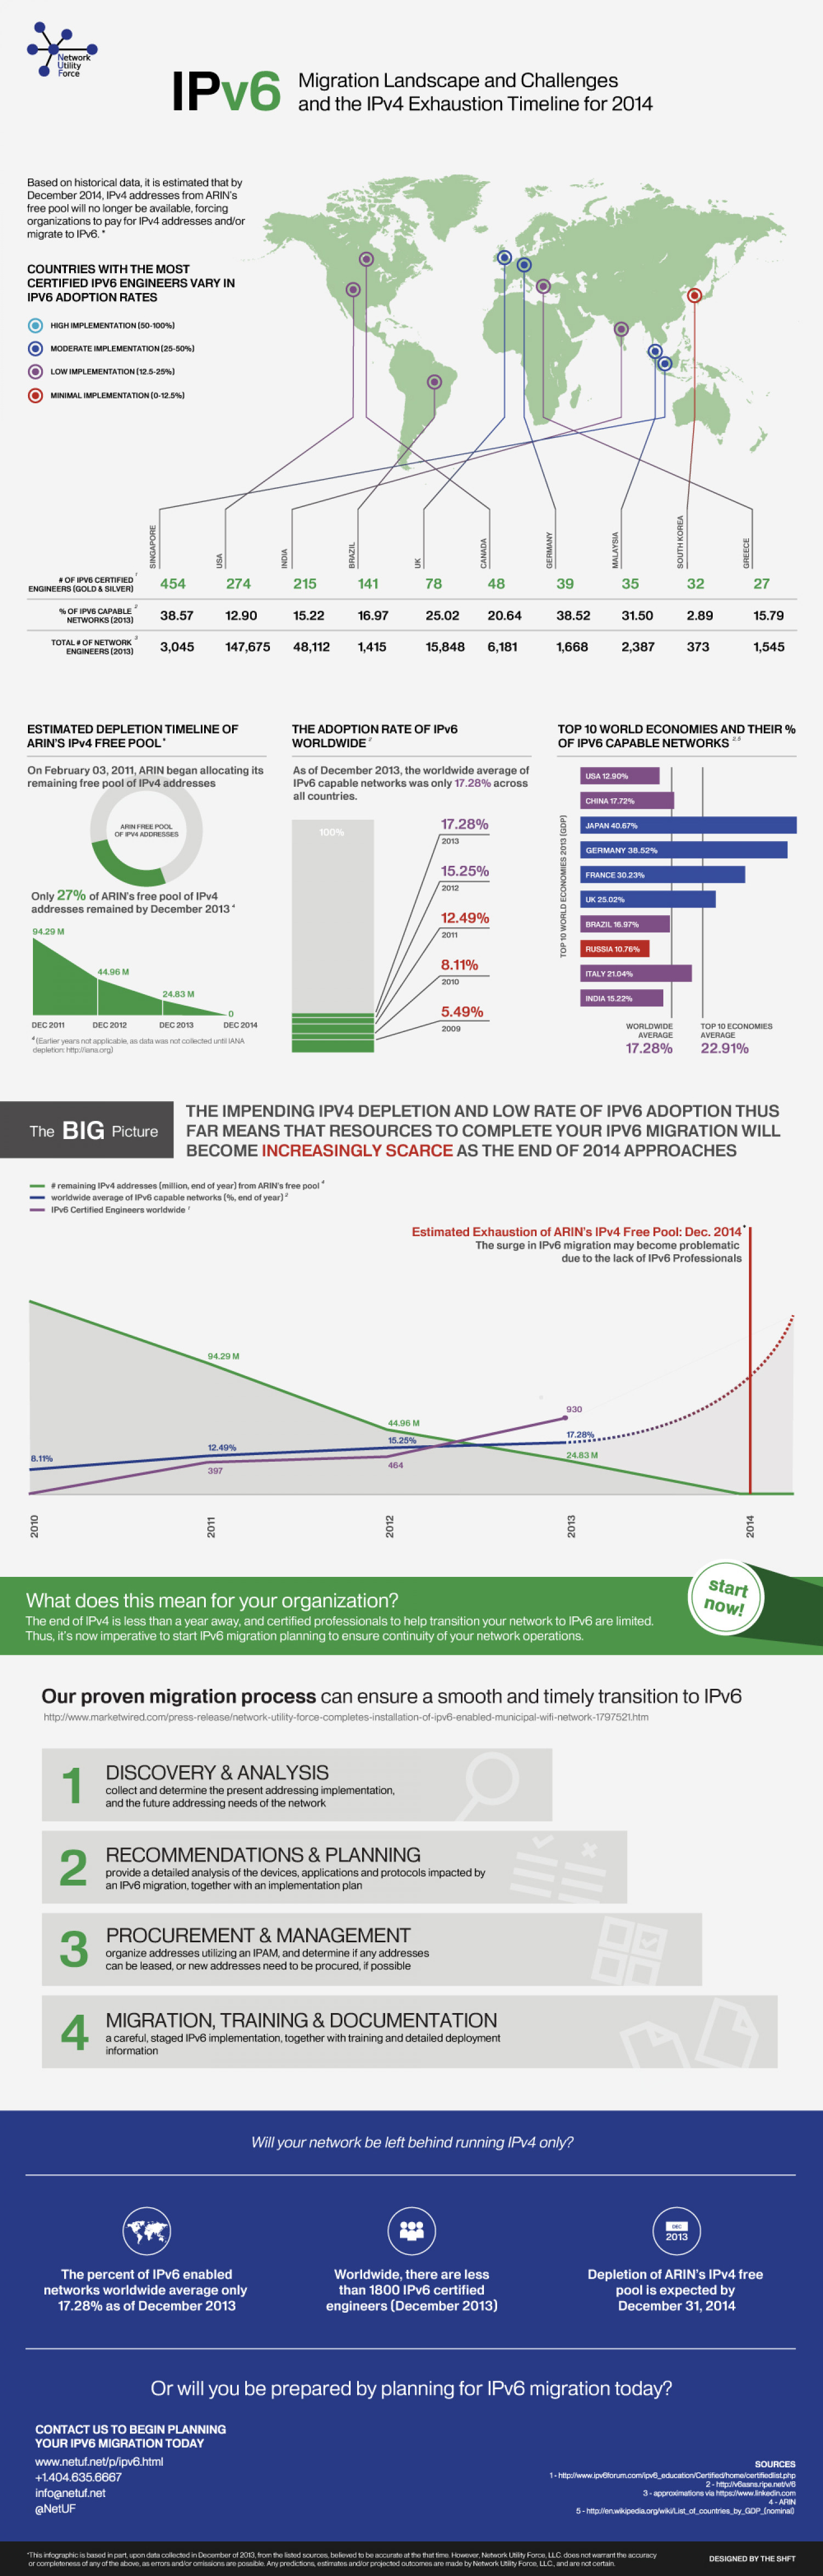 IPv6 Migration Landscape and Challenges, and IPv4 Exhaustion Timeline for 2014 Infographic